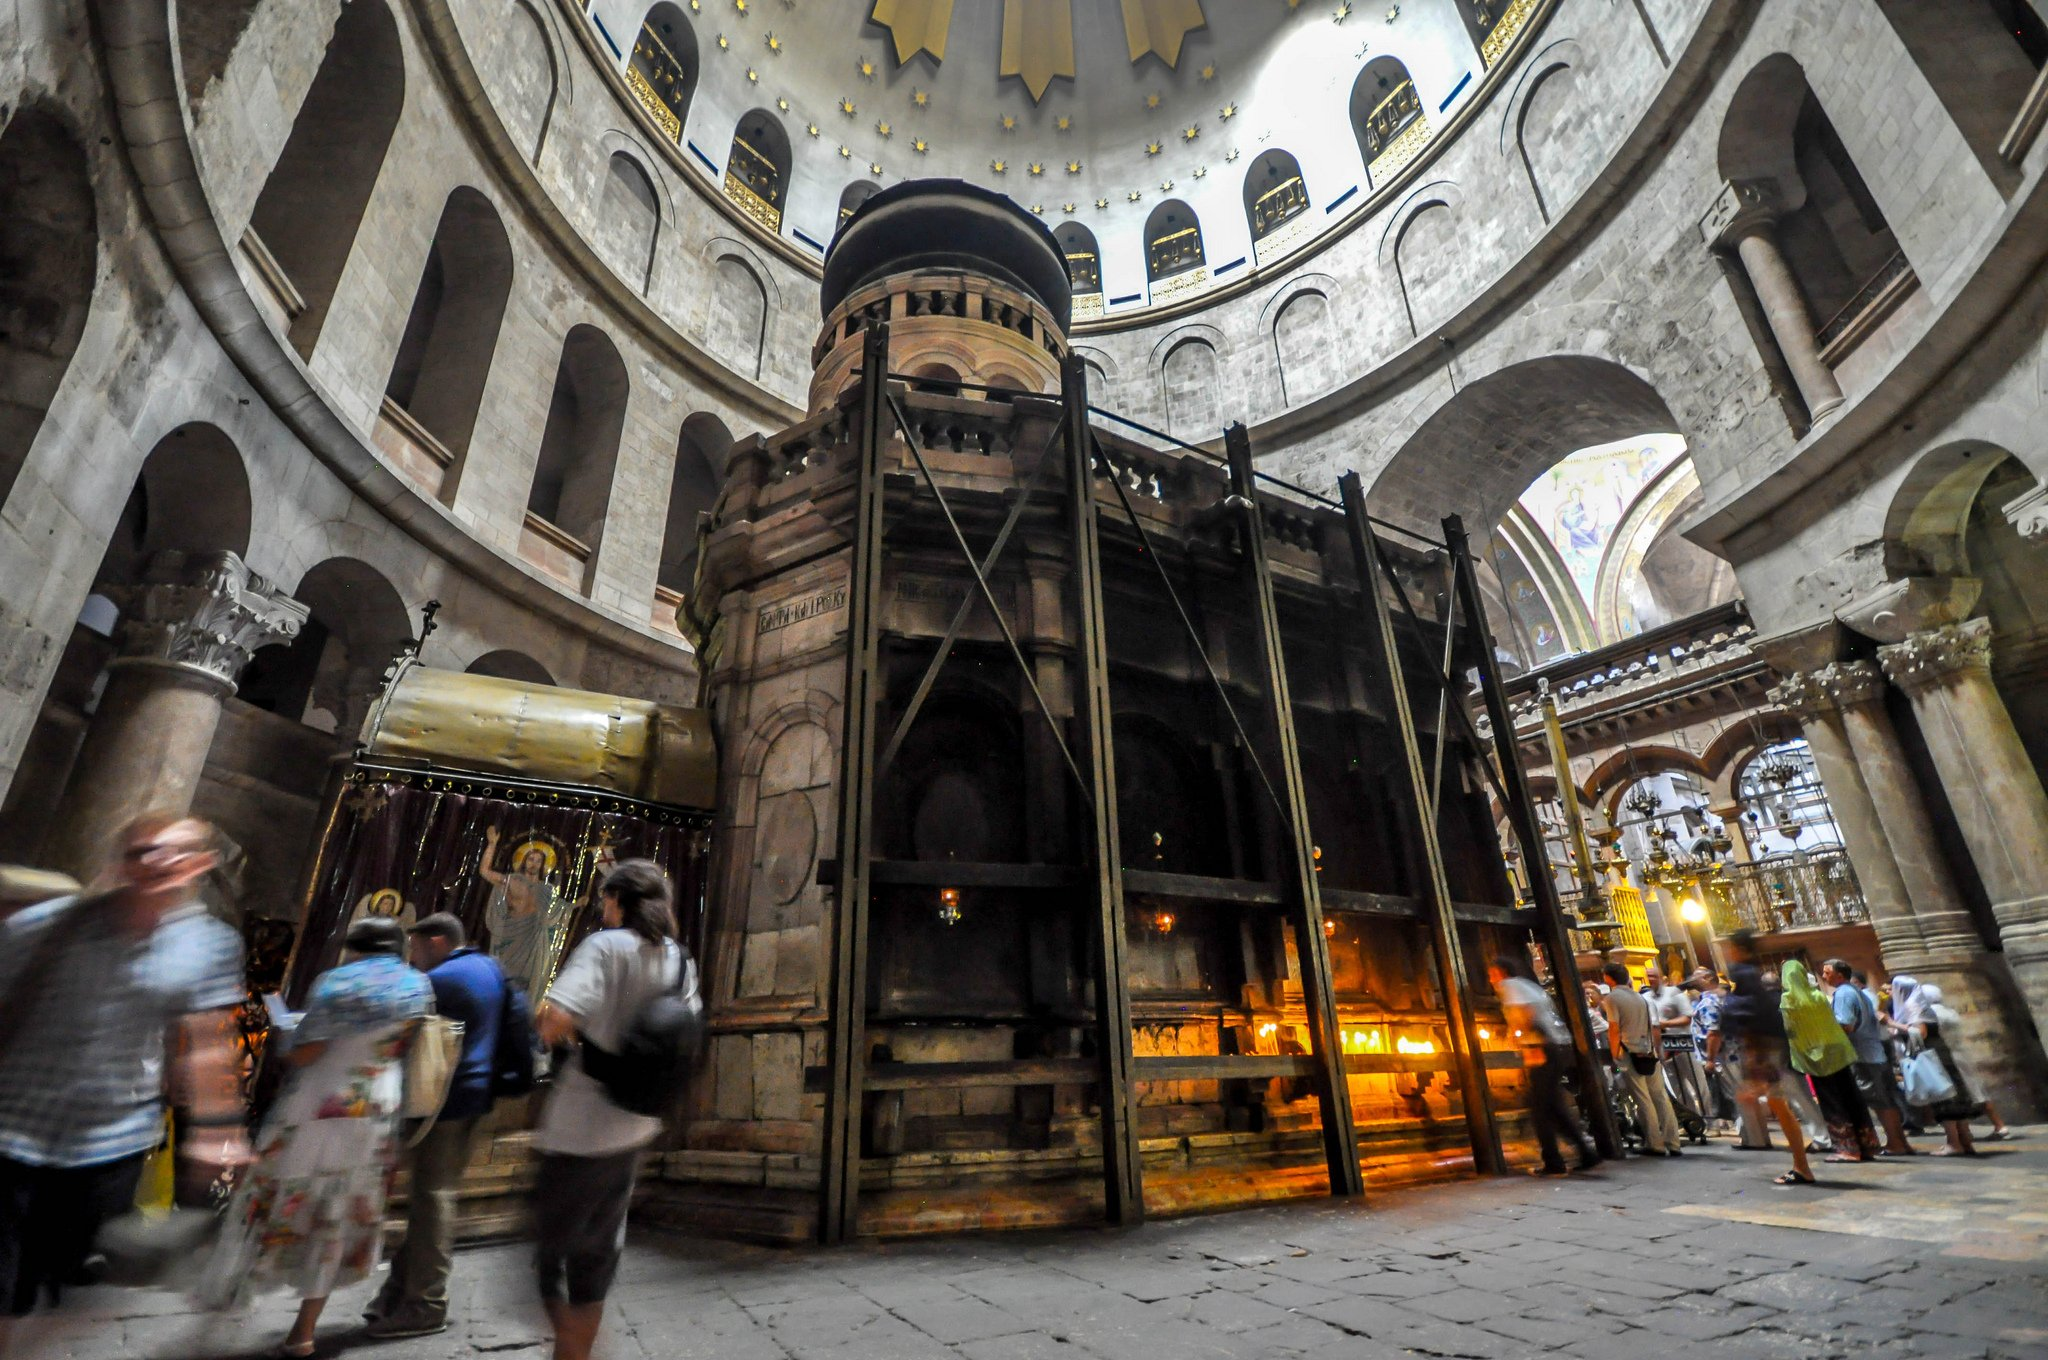 The Holy Aedicule in the Church of the Holy Sepulchre in Jerusalem was restored with the help of a high-resolution 3D model.